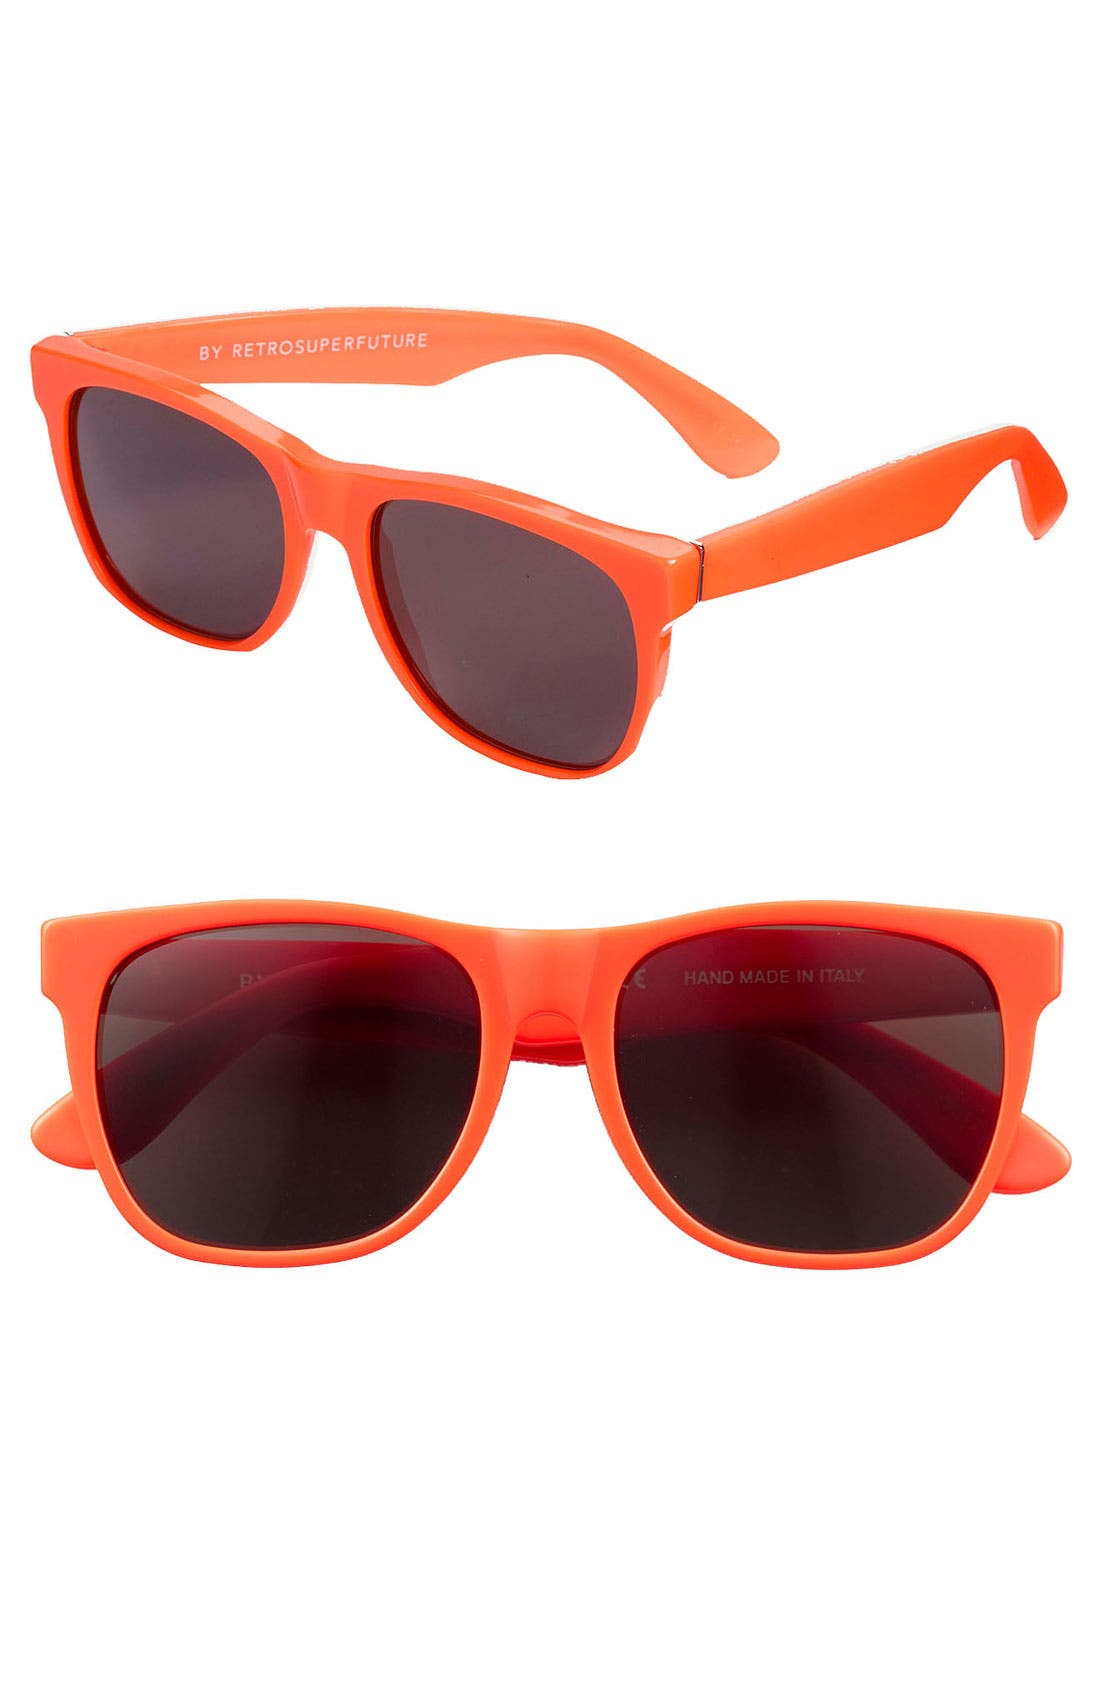 Alternate Image 1 Selected - SUPER by RETROSUPERFUTURE® 'Classic' 55mm Sunglasses